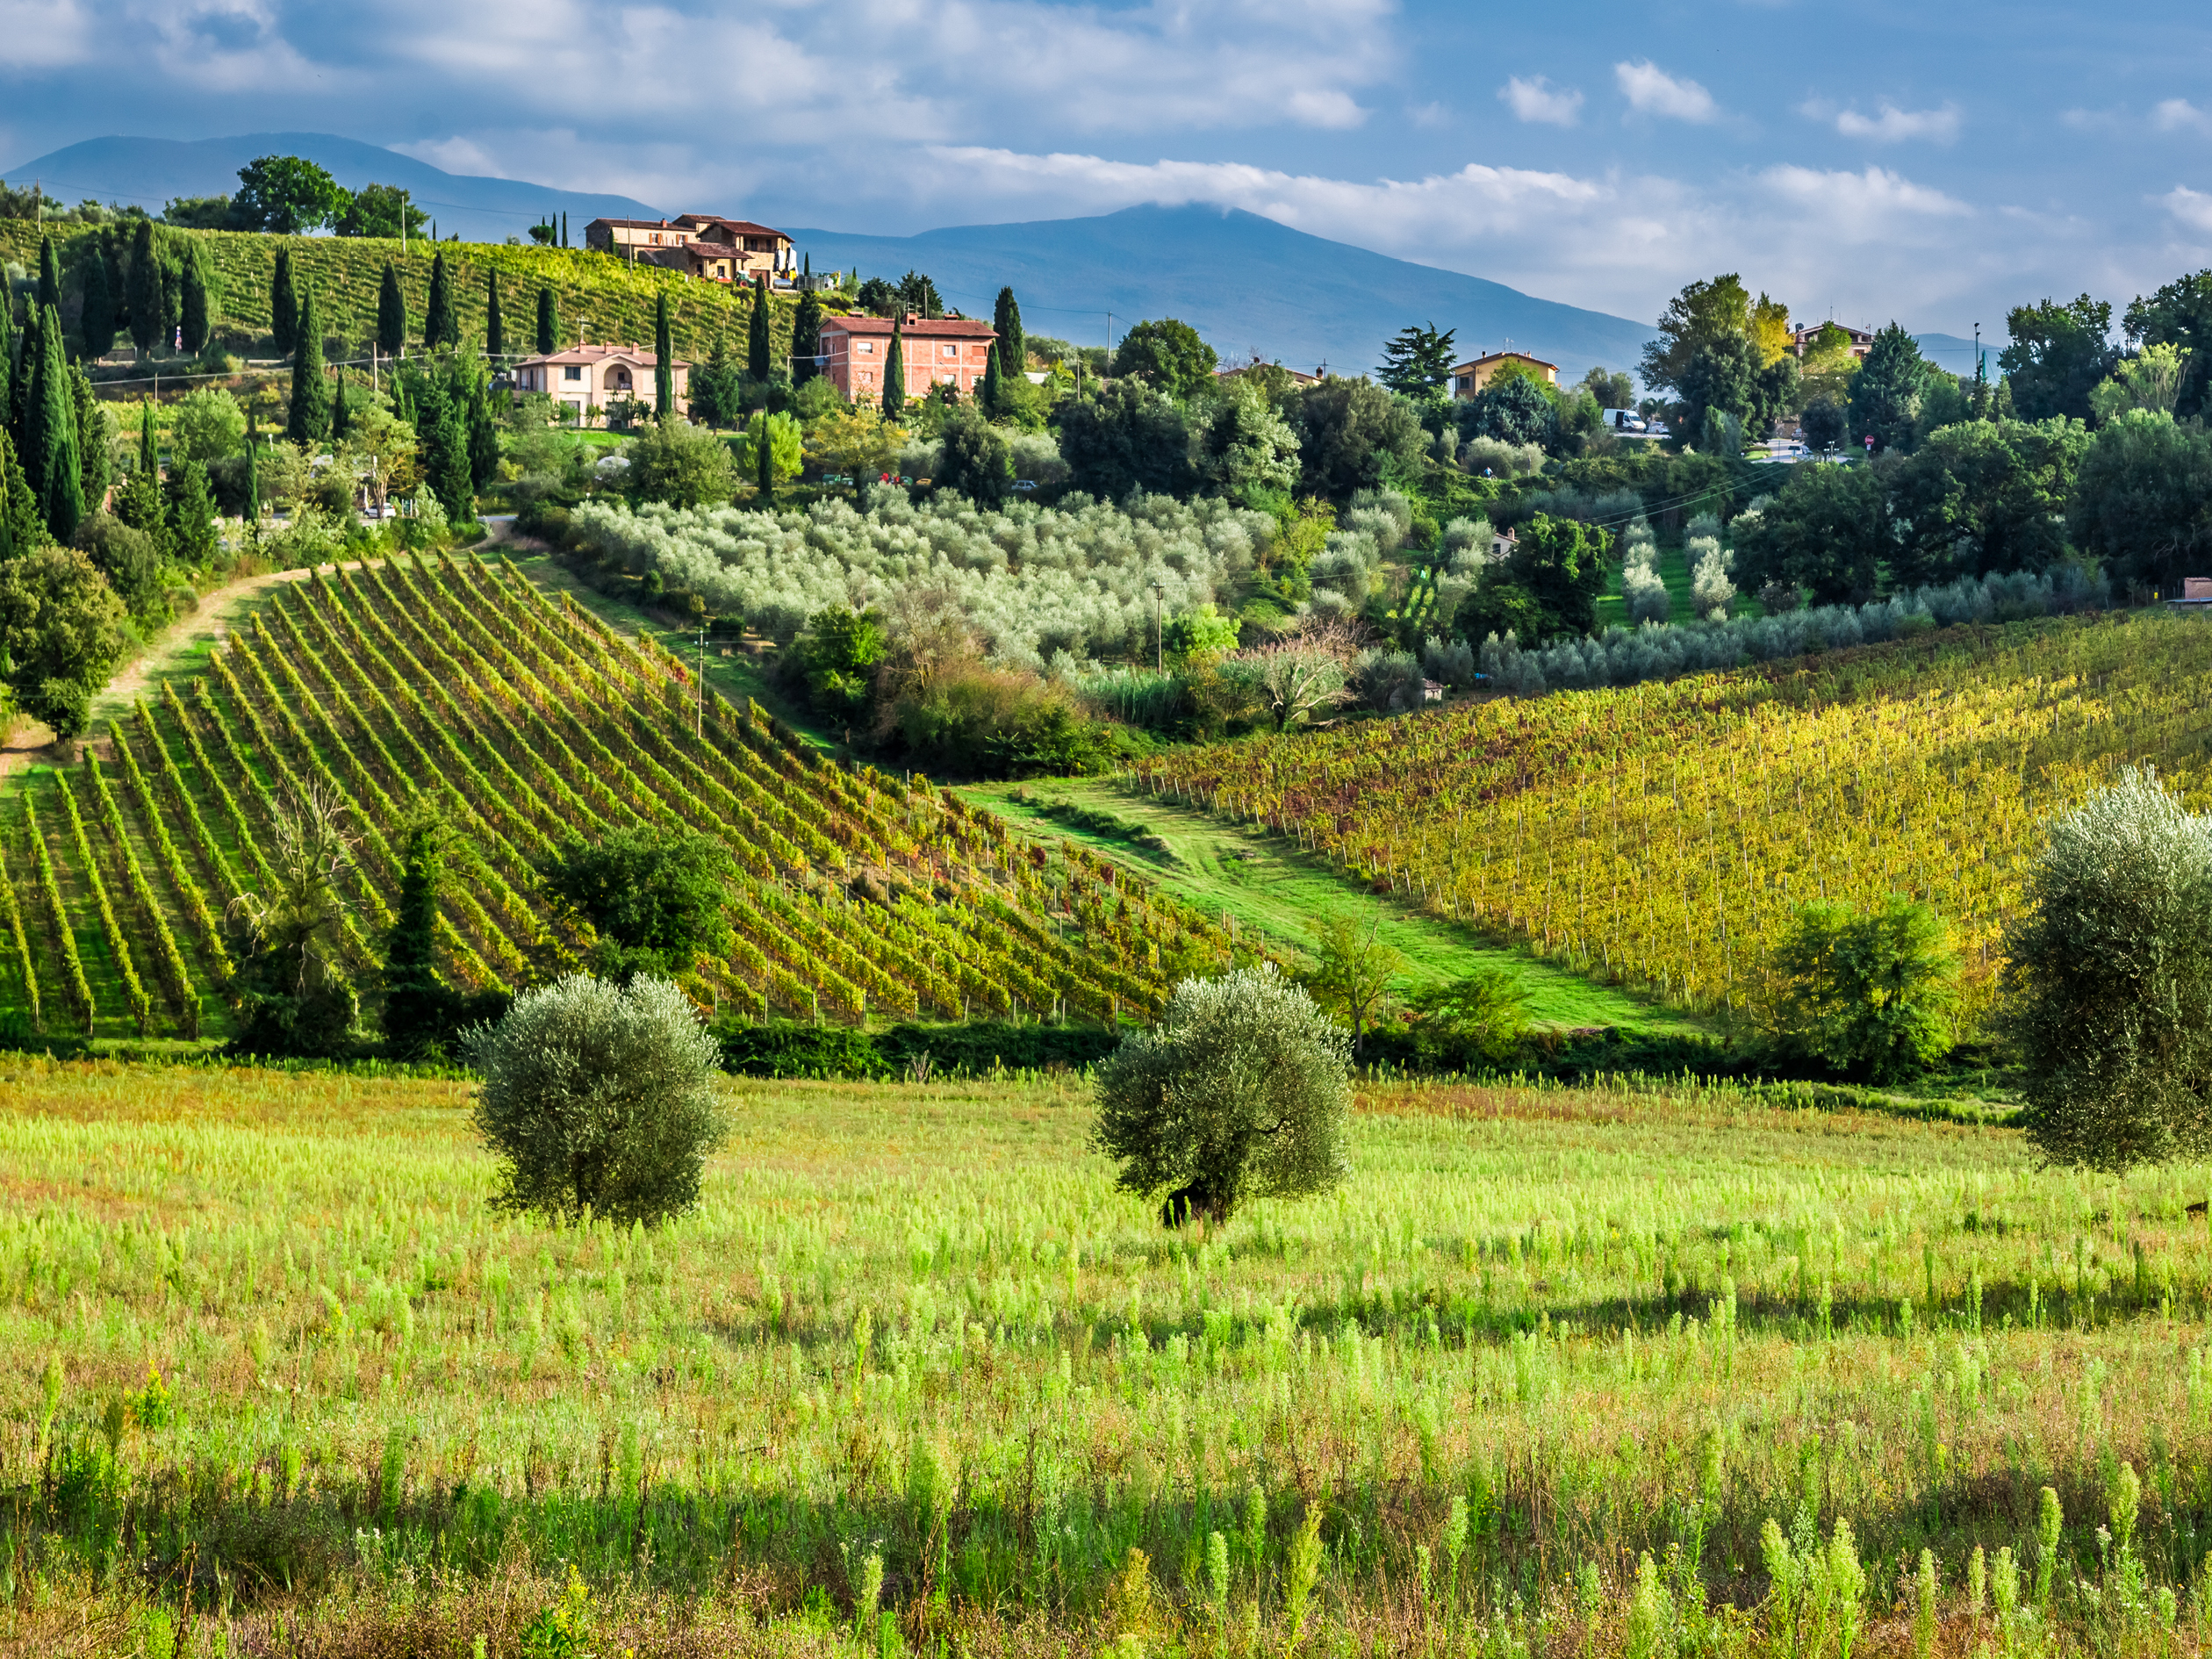 Tuscany</a><br> by <a href='/profile/Bling-King/'>Bling King</a>